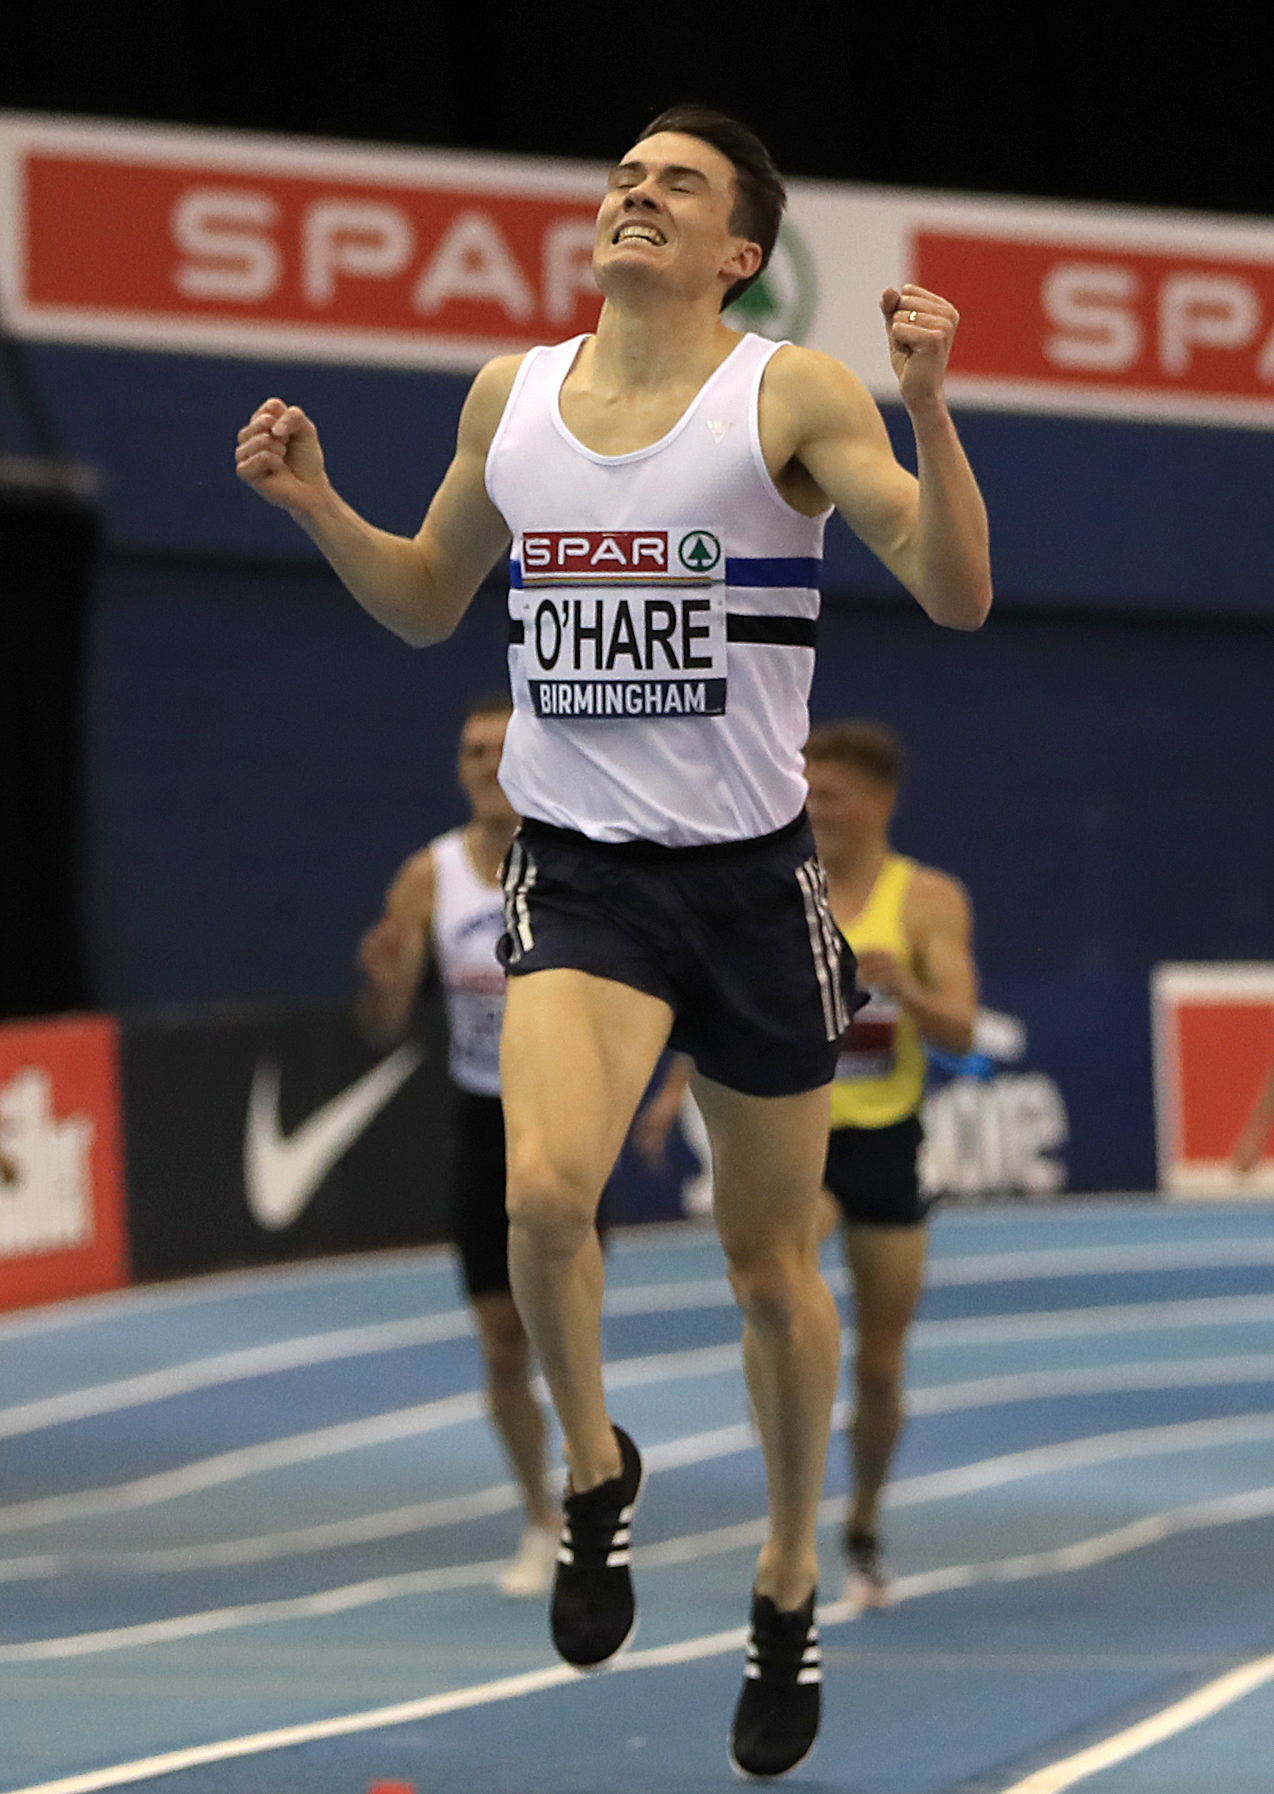 Chris O'Hare celebrates winning the Men's 3000 metres during day two of the SPAR British Athletic Indoor Championships at Arena Birmingham. PRESS ASSOCIATION Photo. Picture date: Sunday February 10, 2019. See PA story ATHLETICS Birmingham. Photo